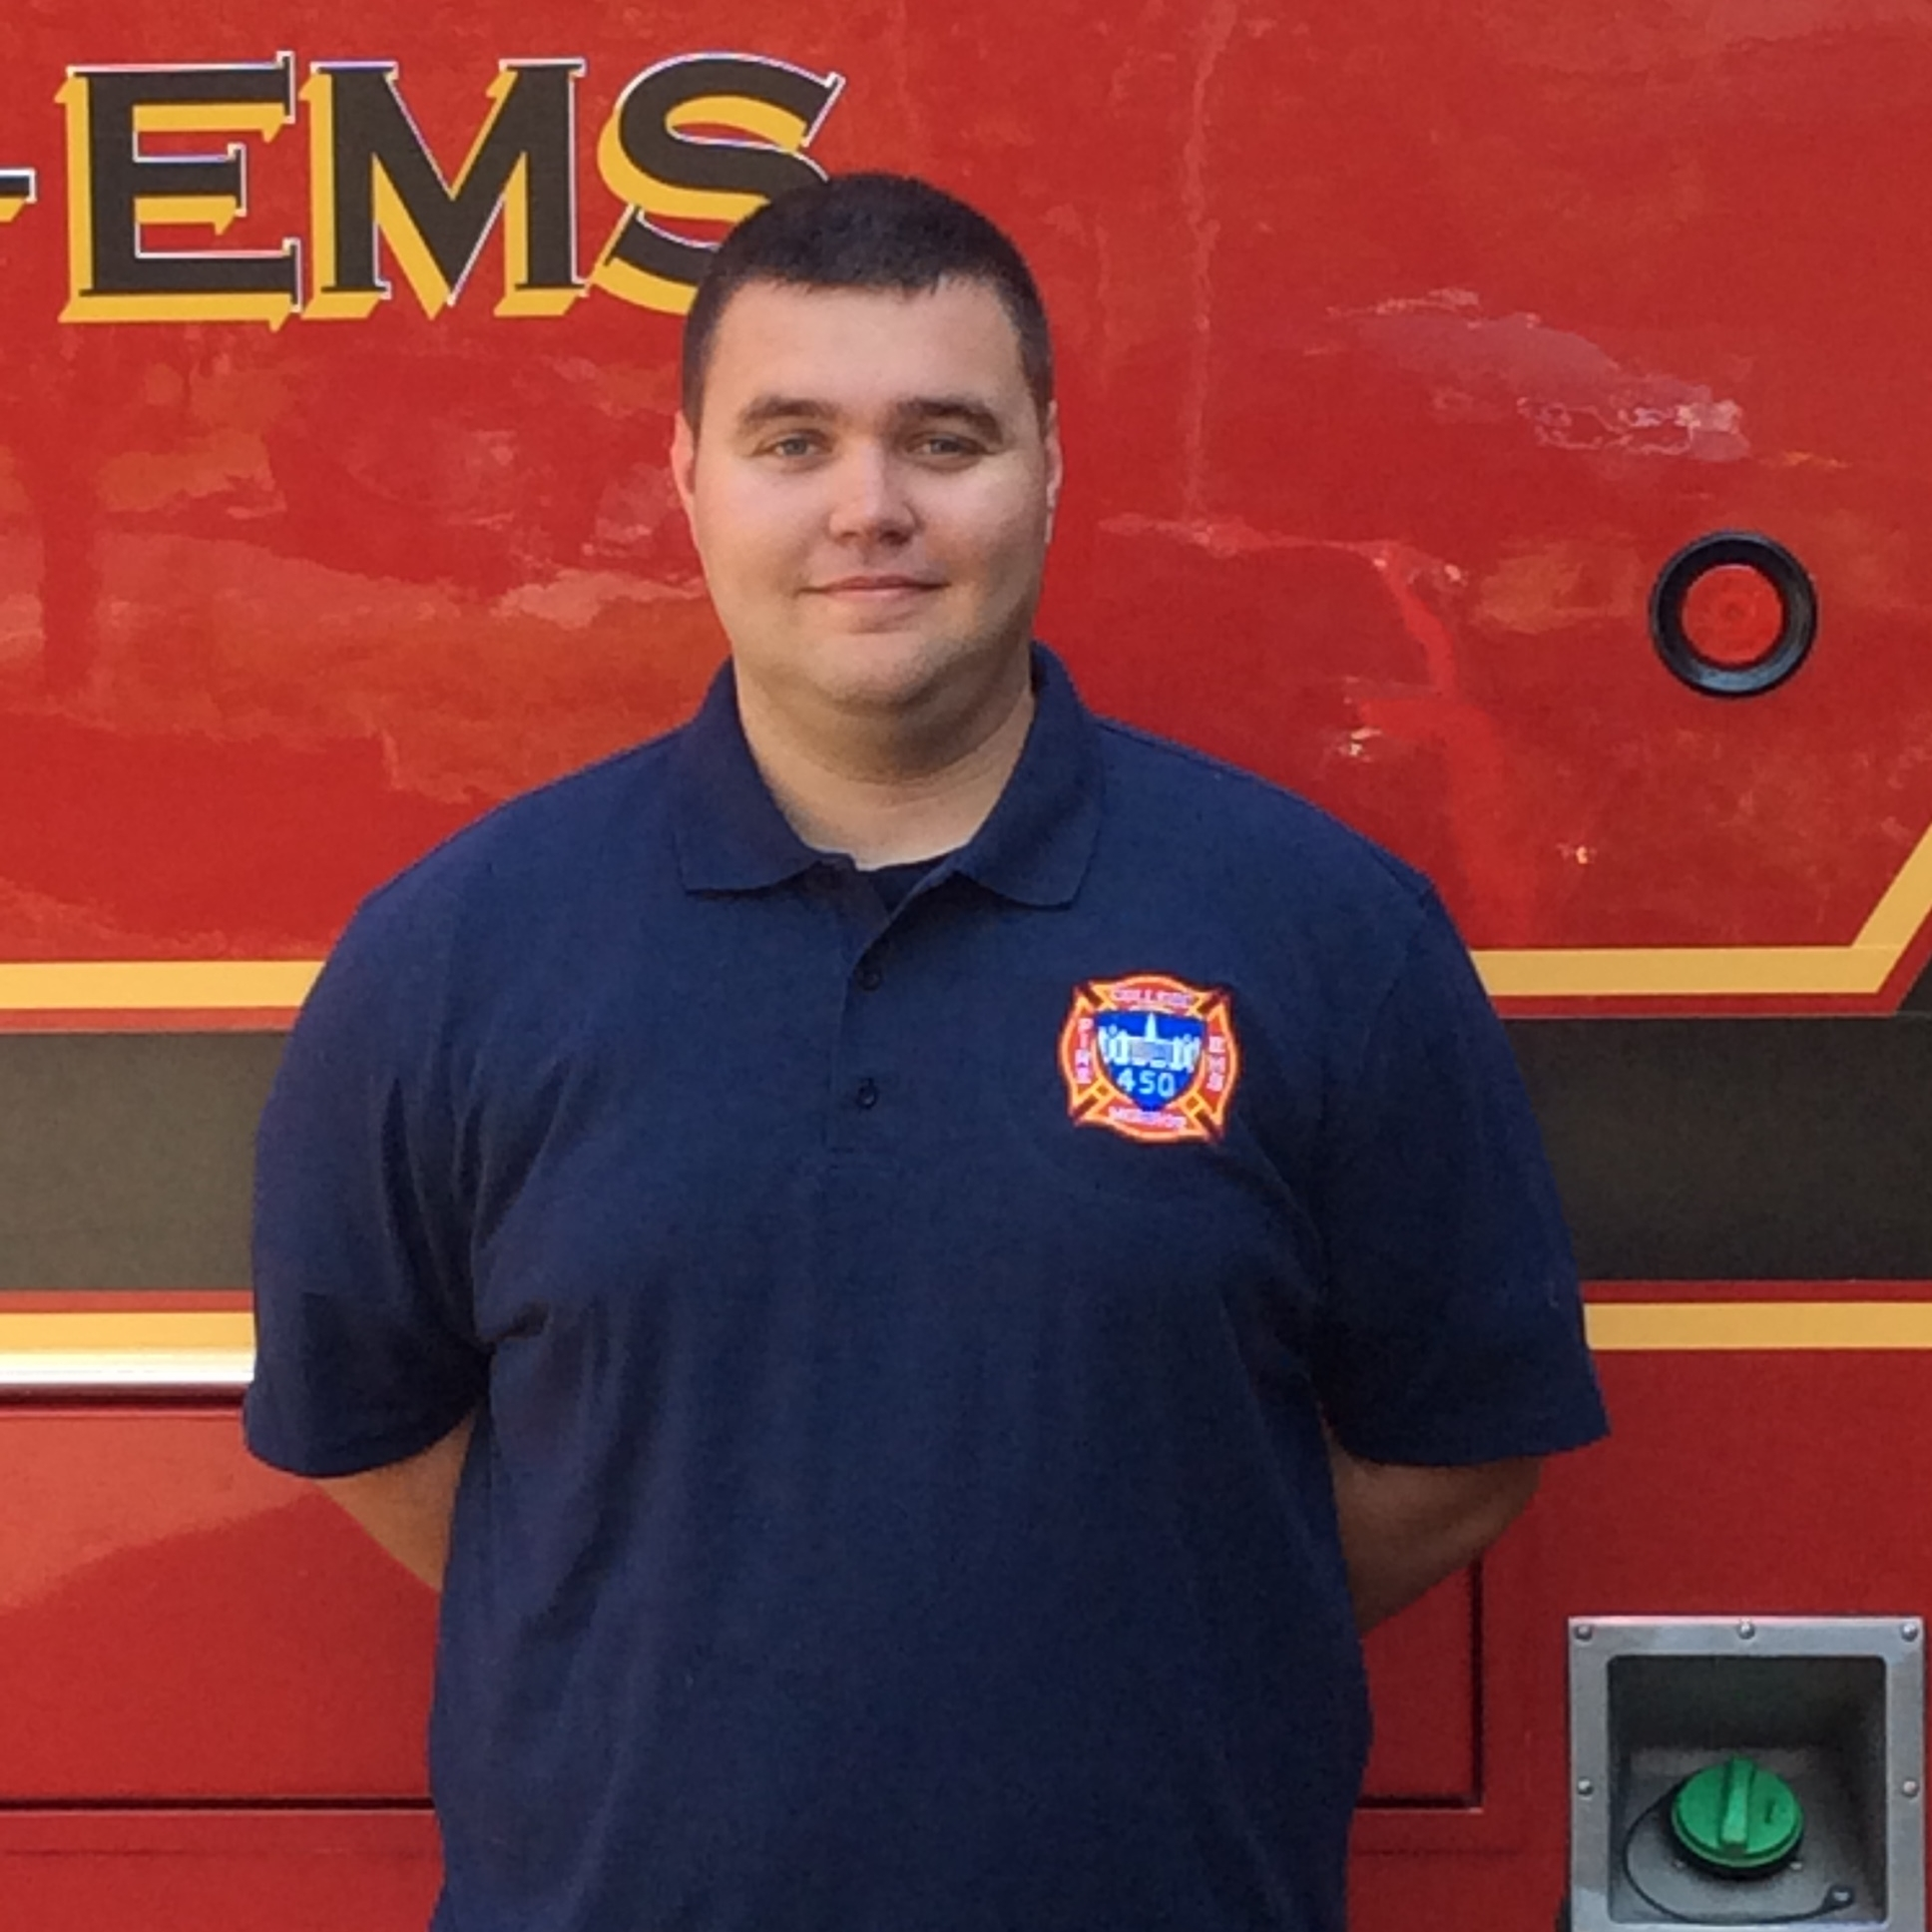 Andrew Sims - Firefighter II, Advanced EMT